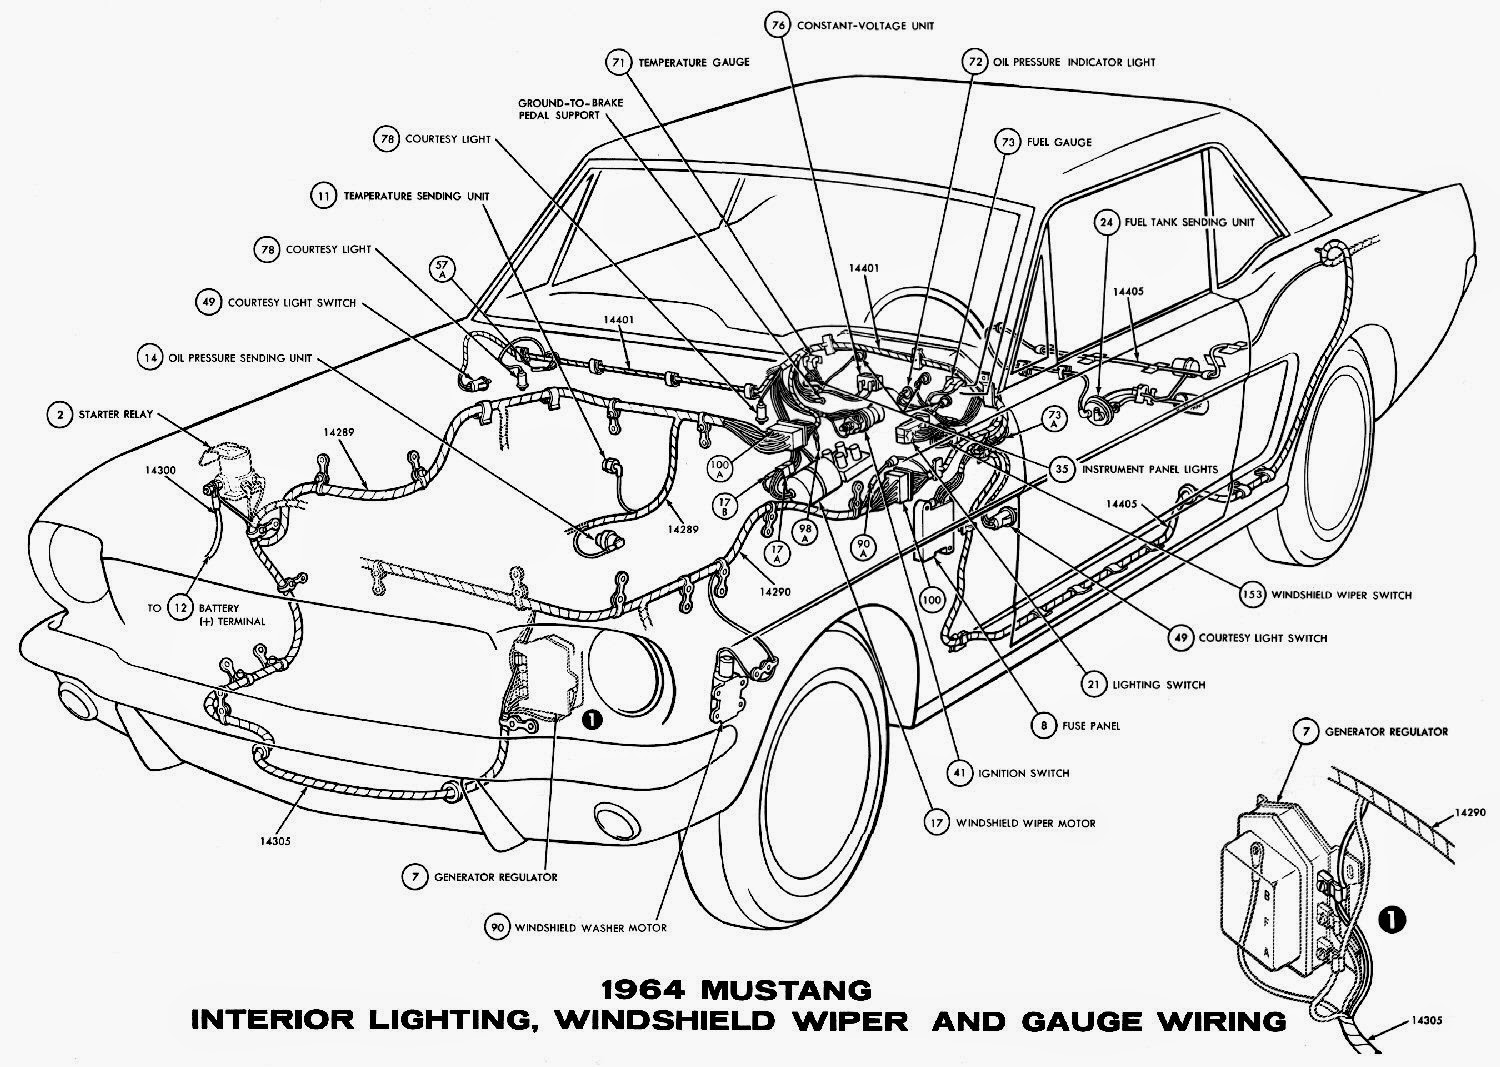 1964 Mustang Wiring Diagrams | Schematic Wiring Diagrams Solutions